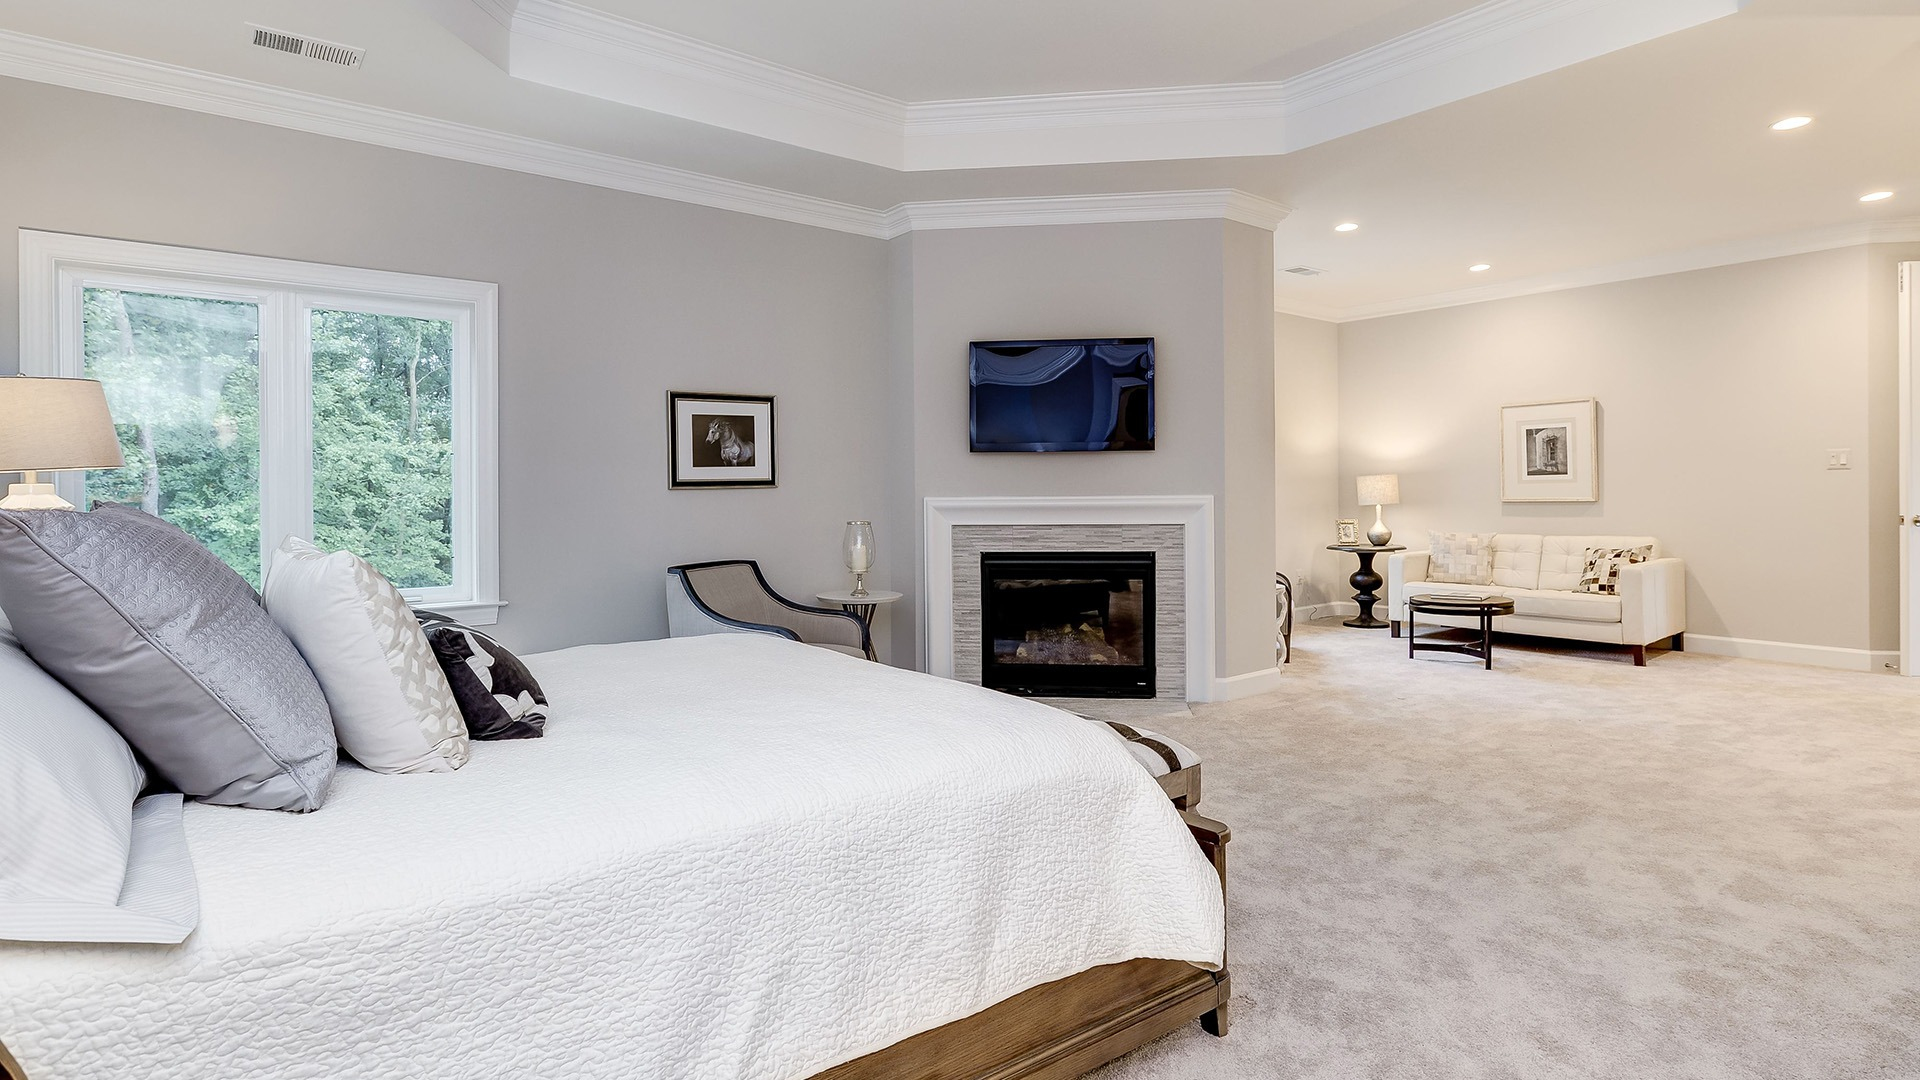 Winthrop Owner's Bedroom. Some optional features shown.